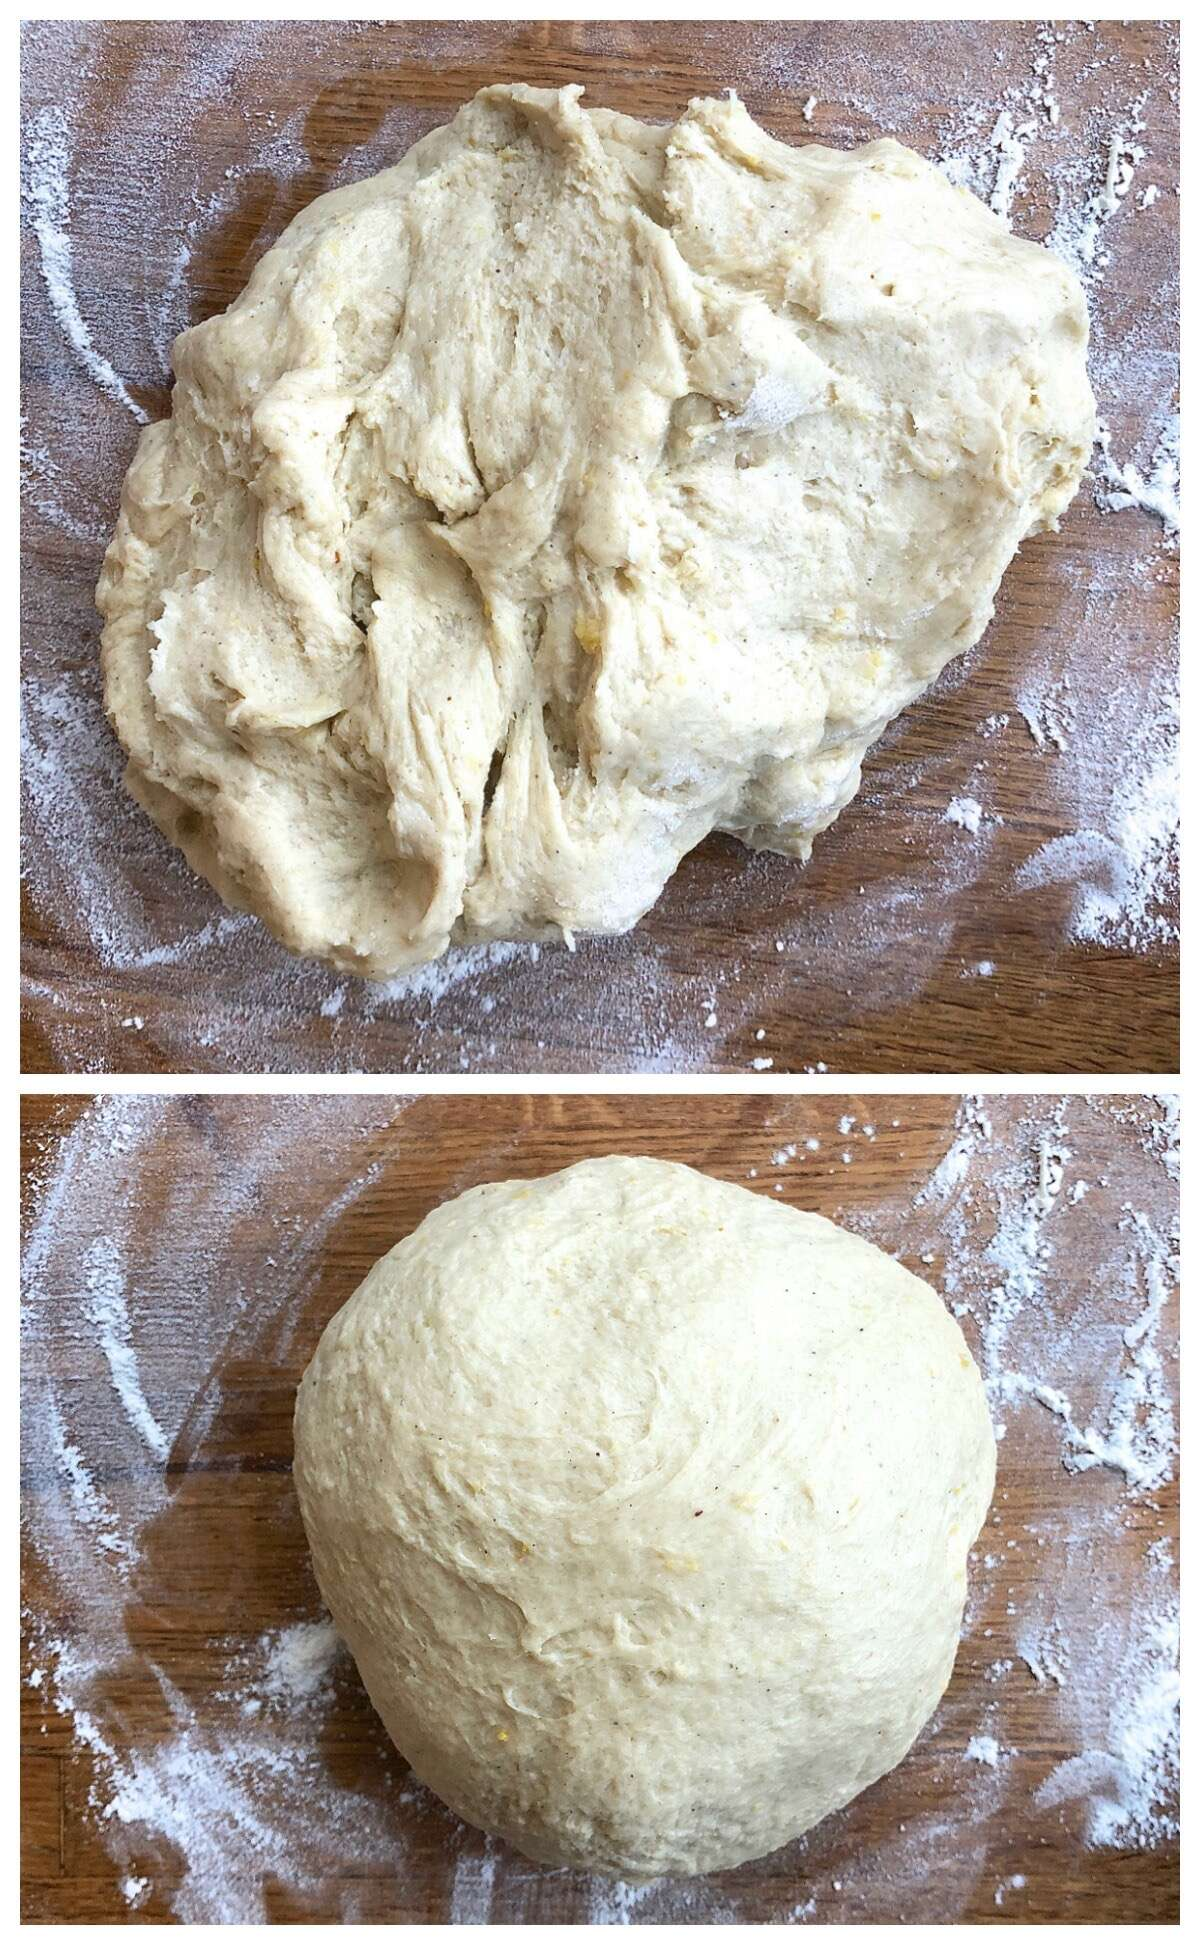 Two pictures: Stollen dough mixed together, still rough; and fully kneaded stollen dough in a smooth ball.